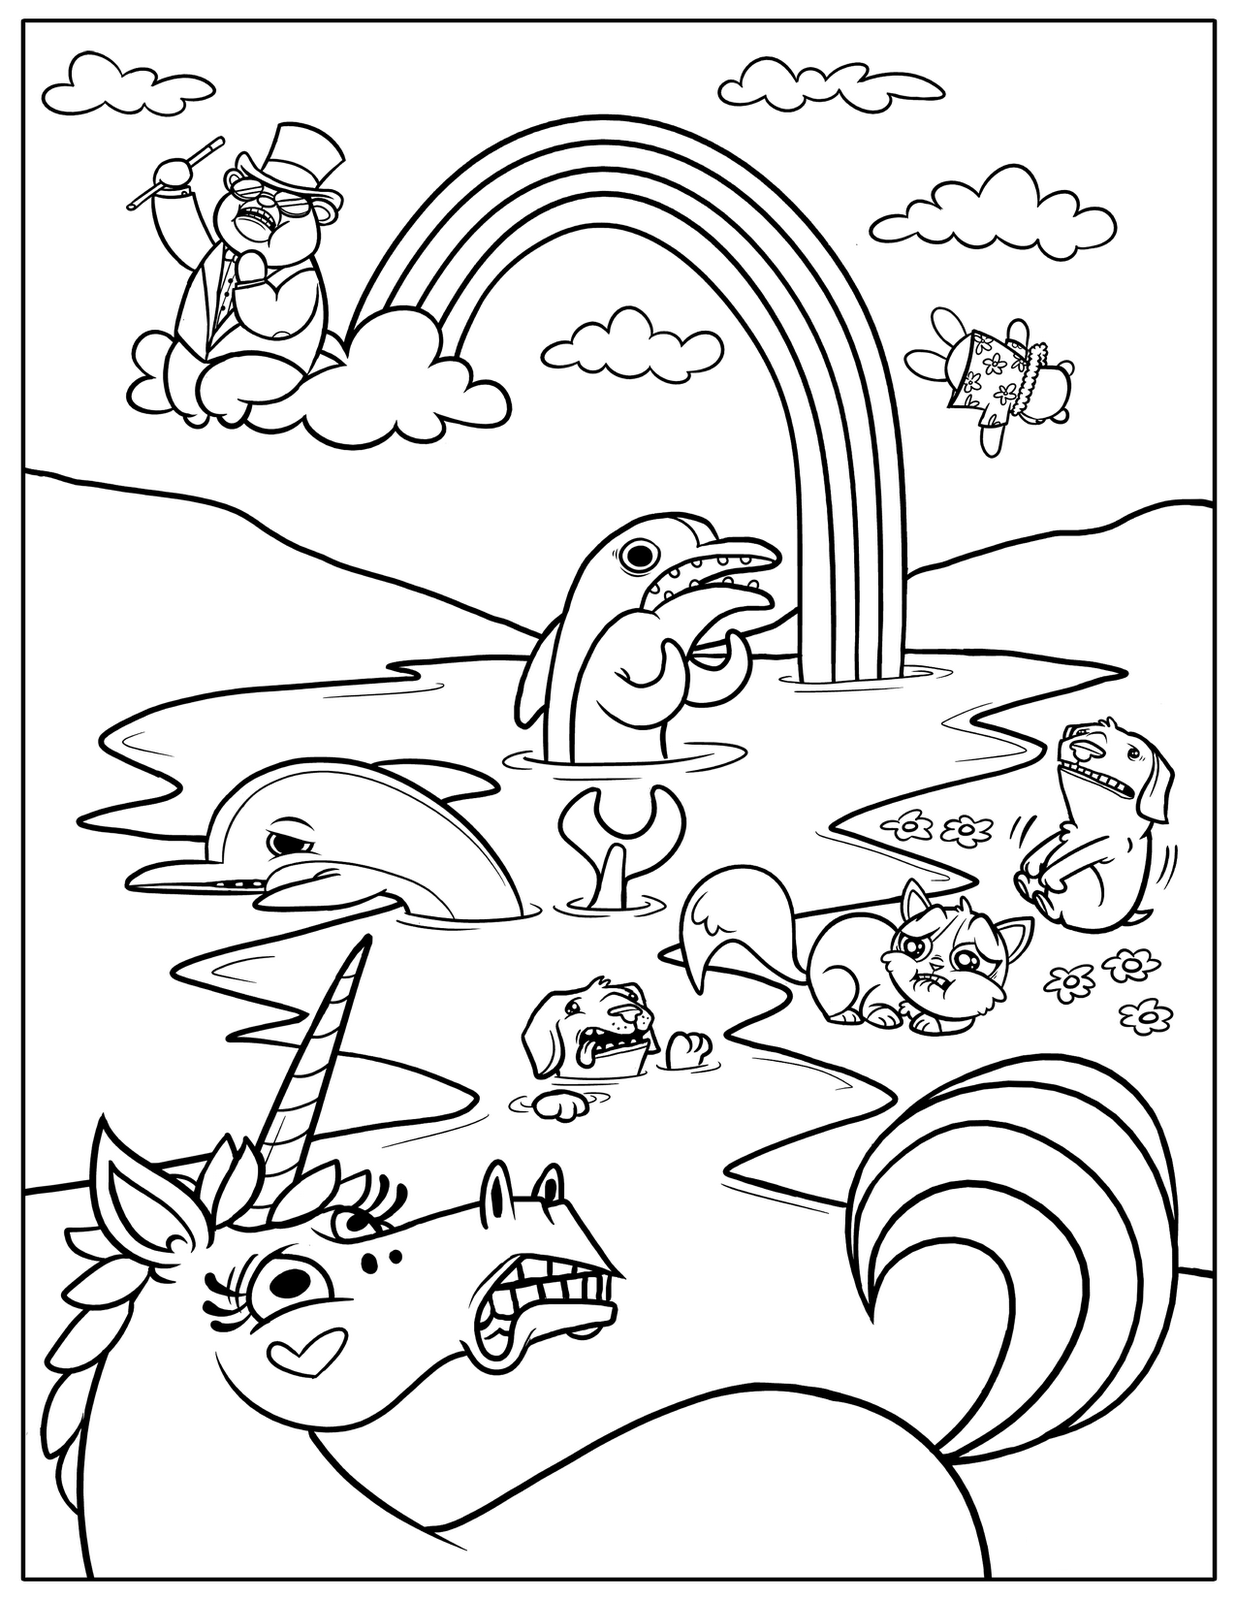 Free Printable Rainbow Coloring Pages For Kids Free Printable Colouring Pages For Toddlers